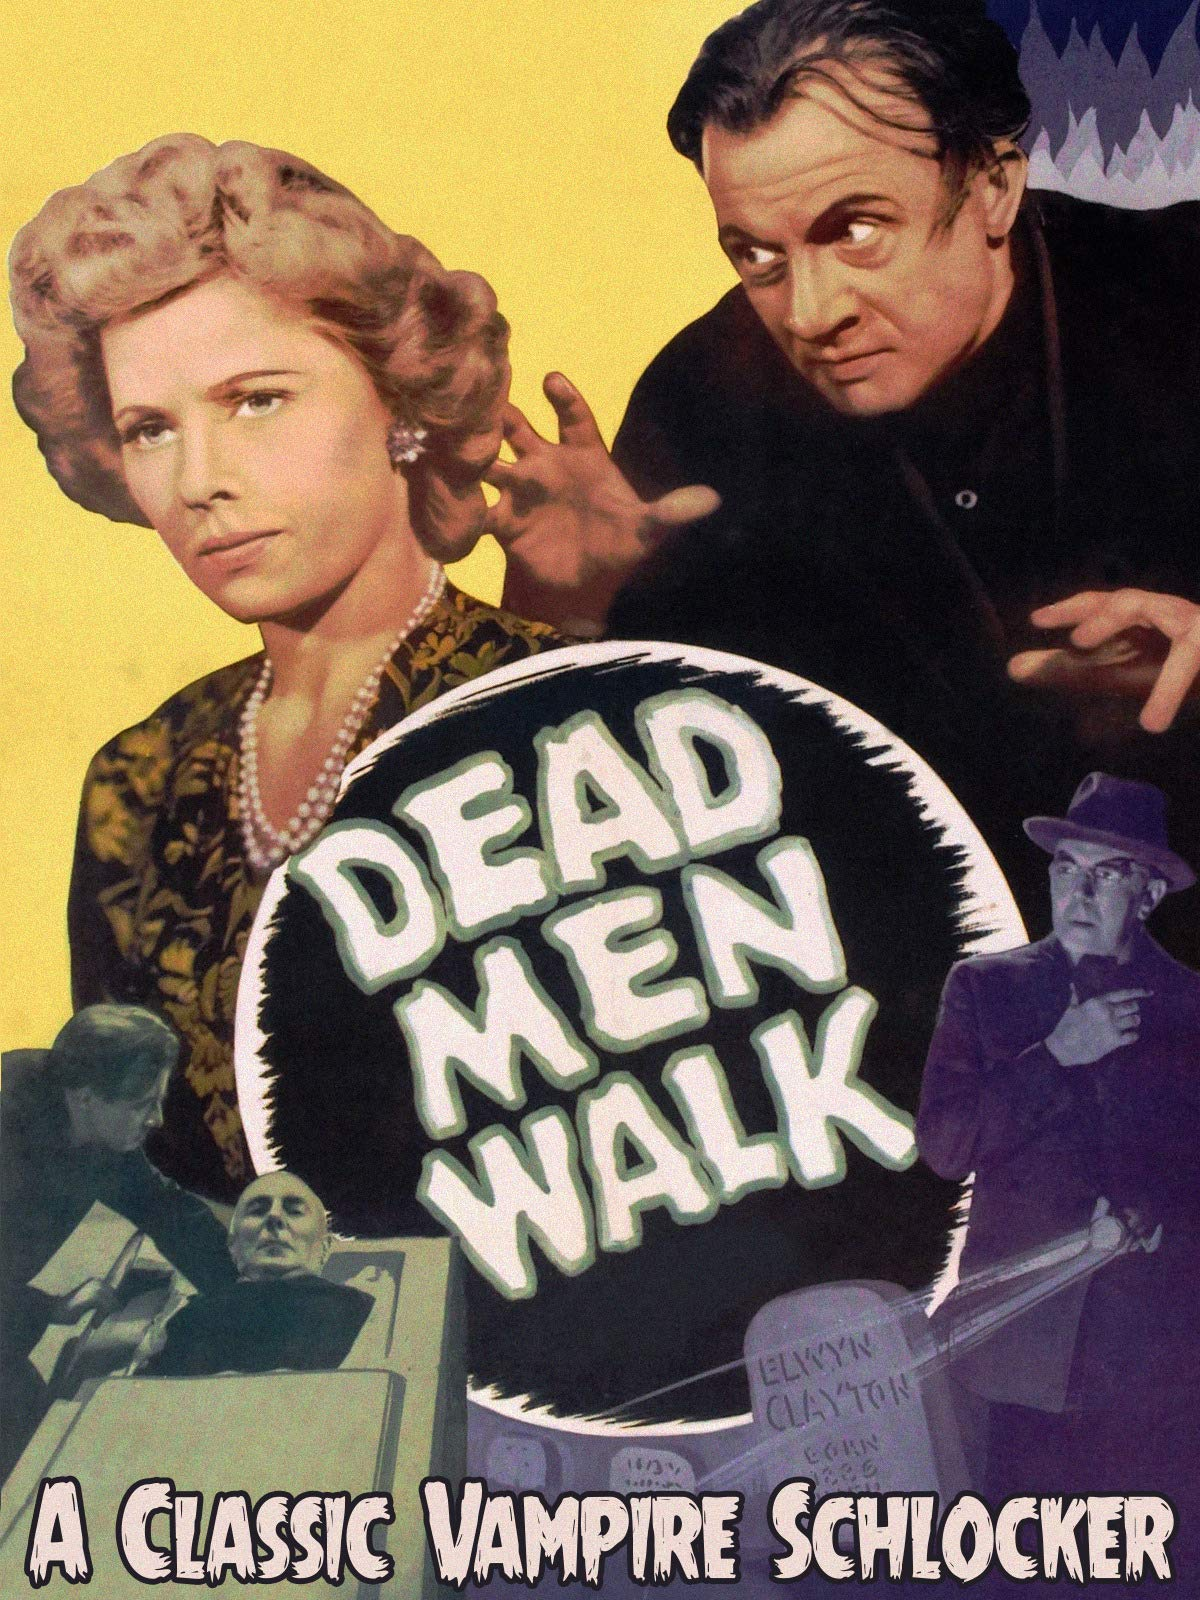 Dead Men Walk - A Classic Vampire Schlocker on Amazon Prime Video UK